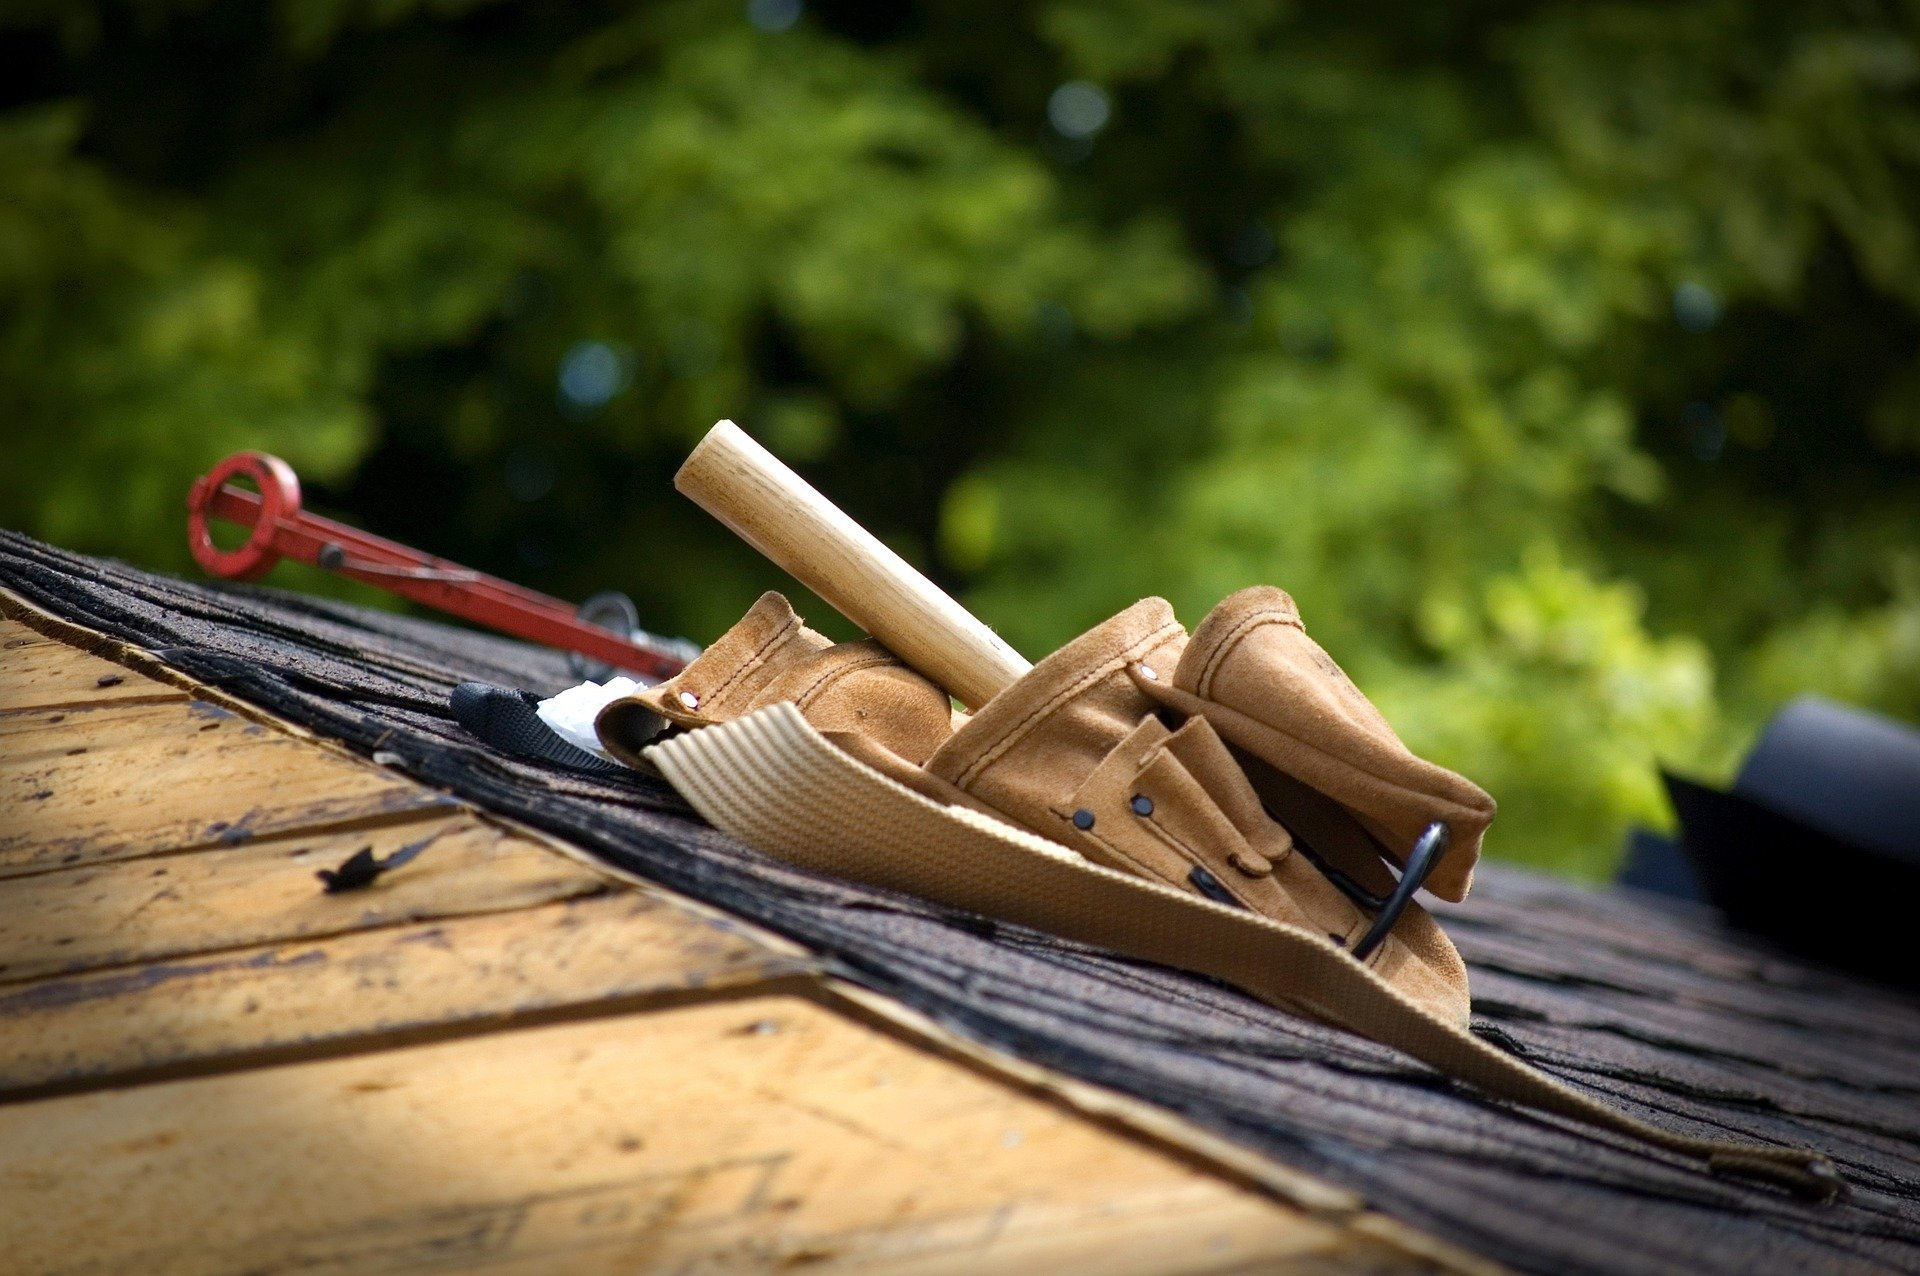 Monroe County Mi Roofing Jus Roofing Repair And Replacement Service